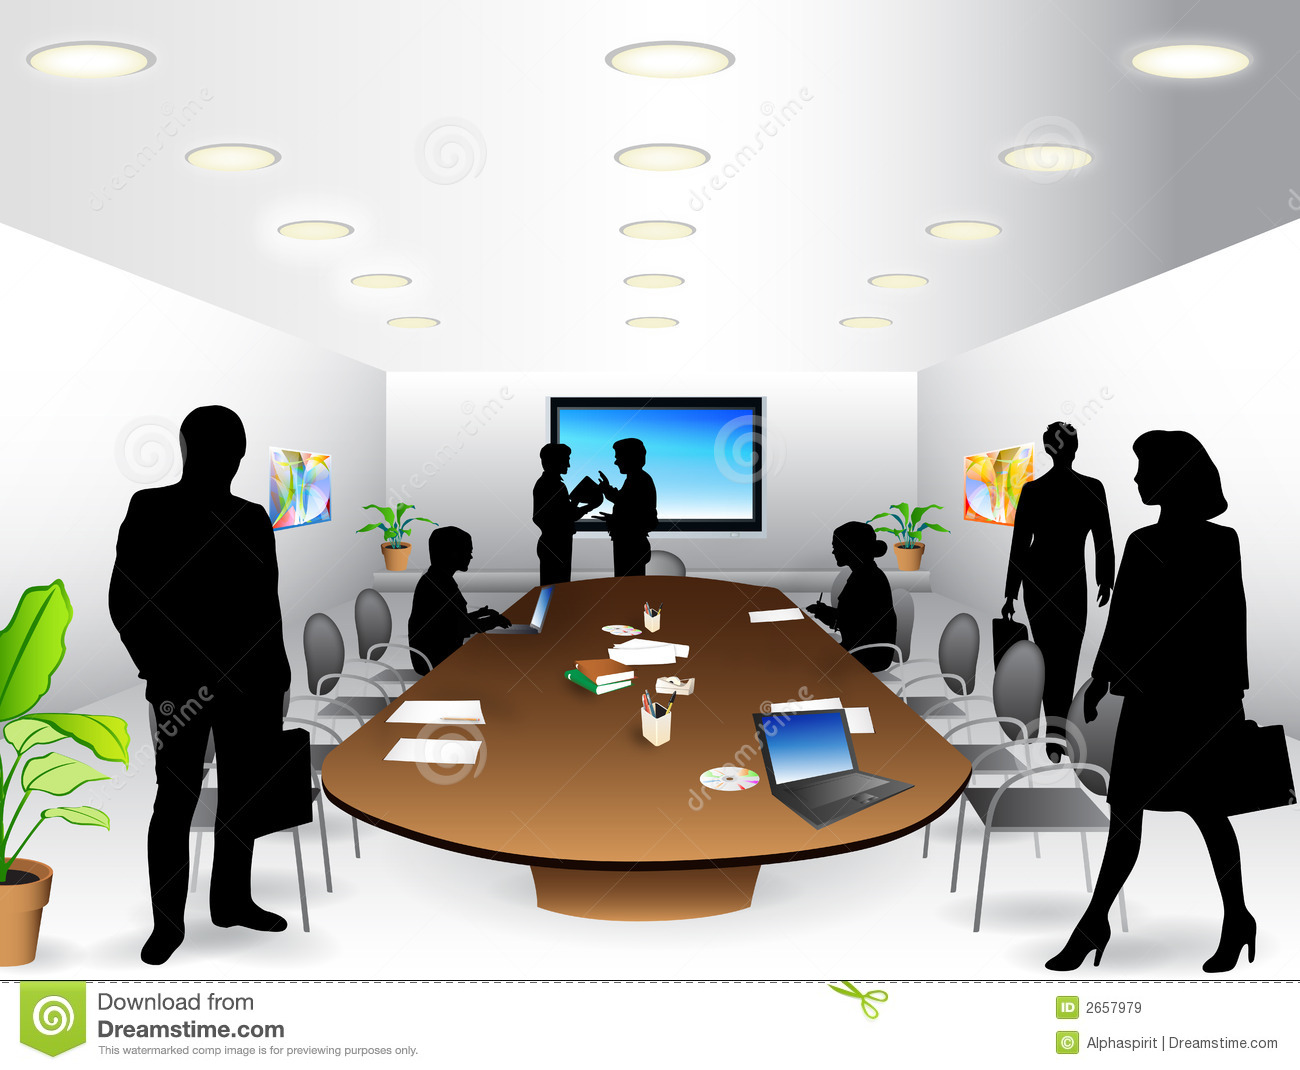 business office clipart - photo #39